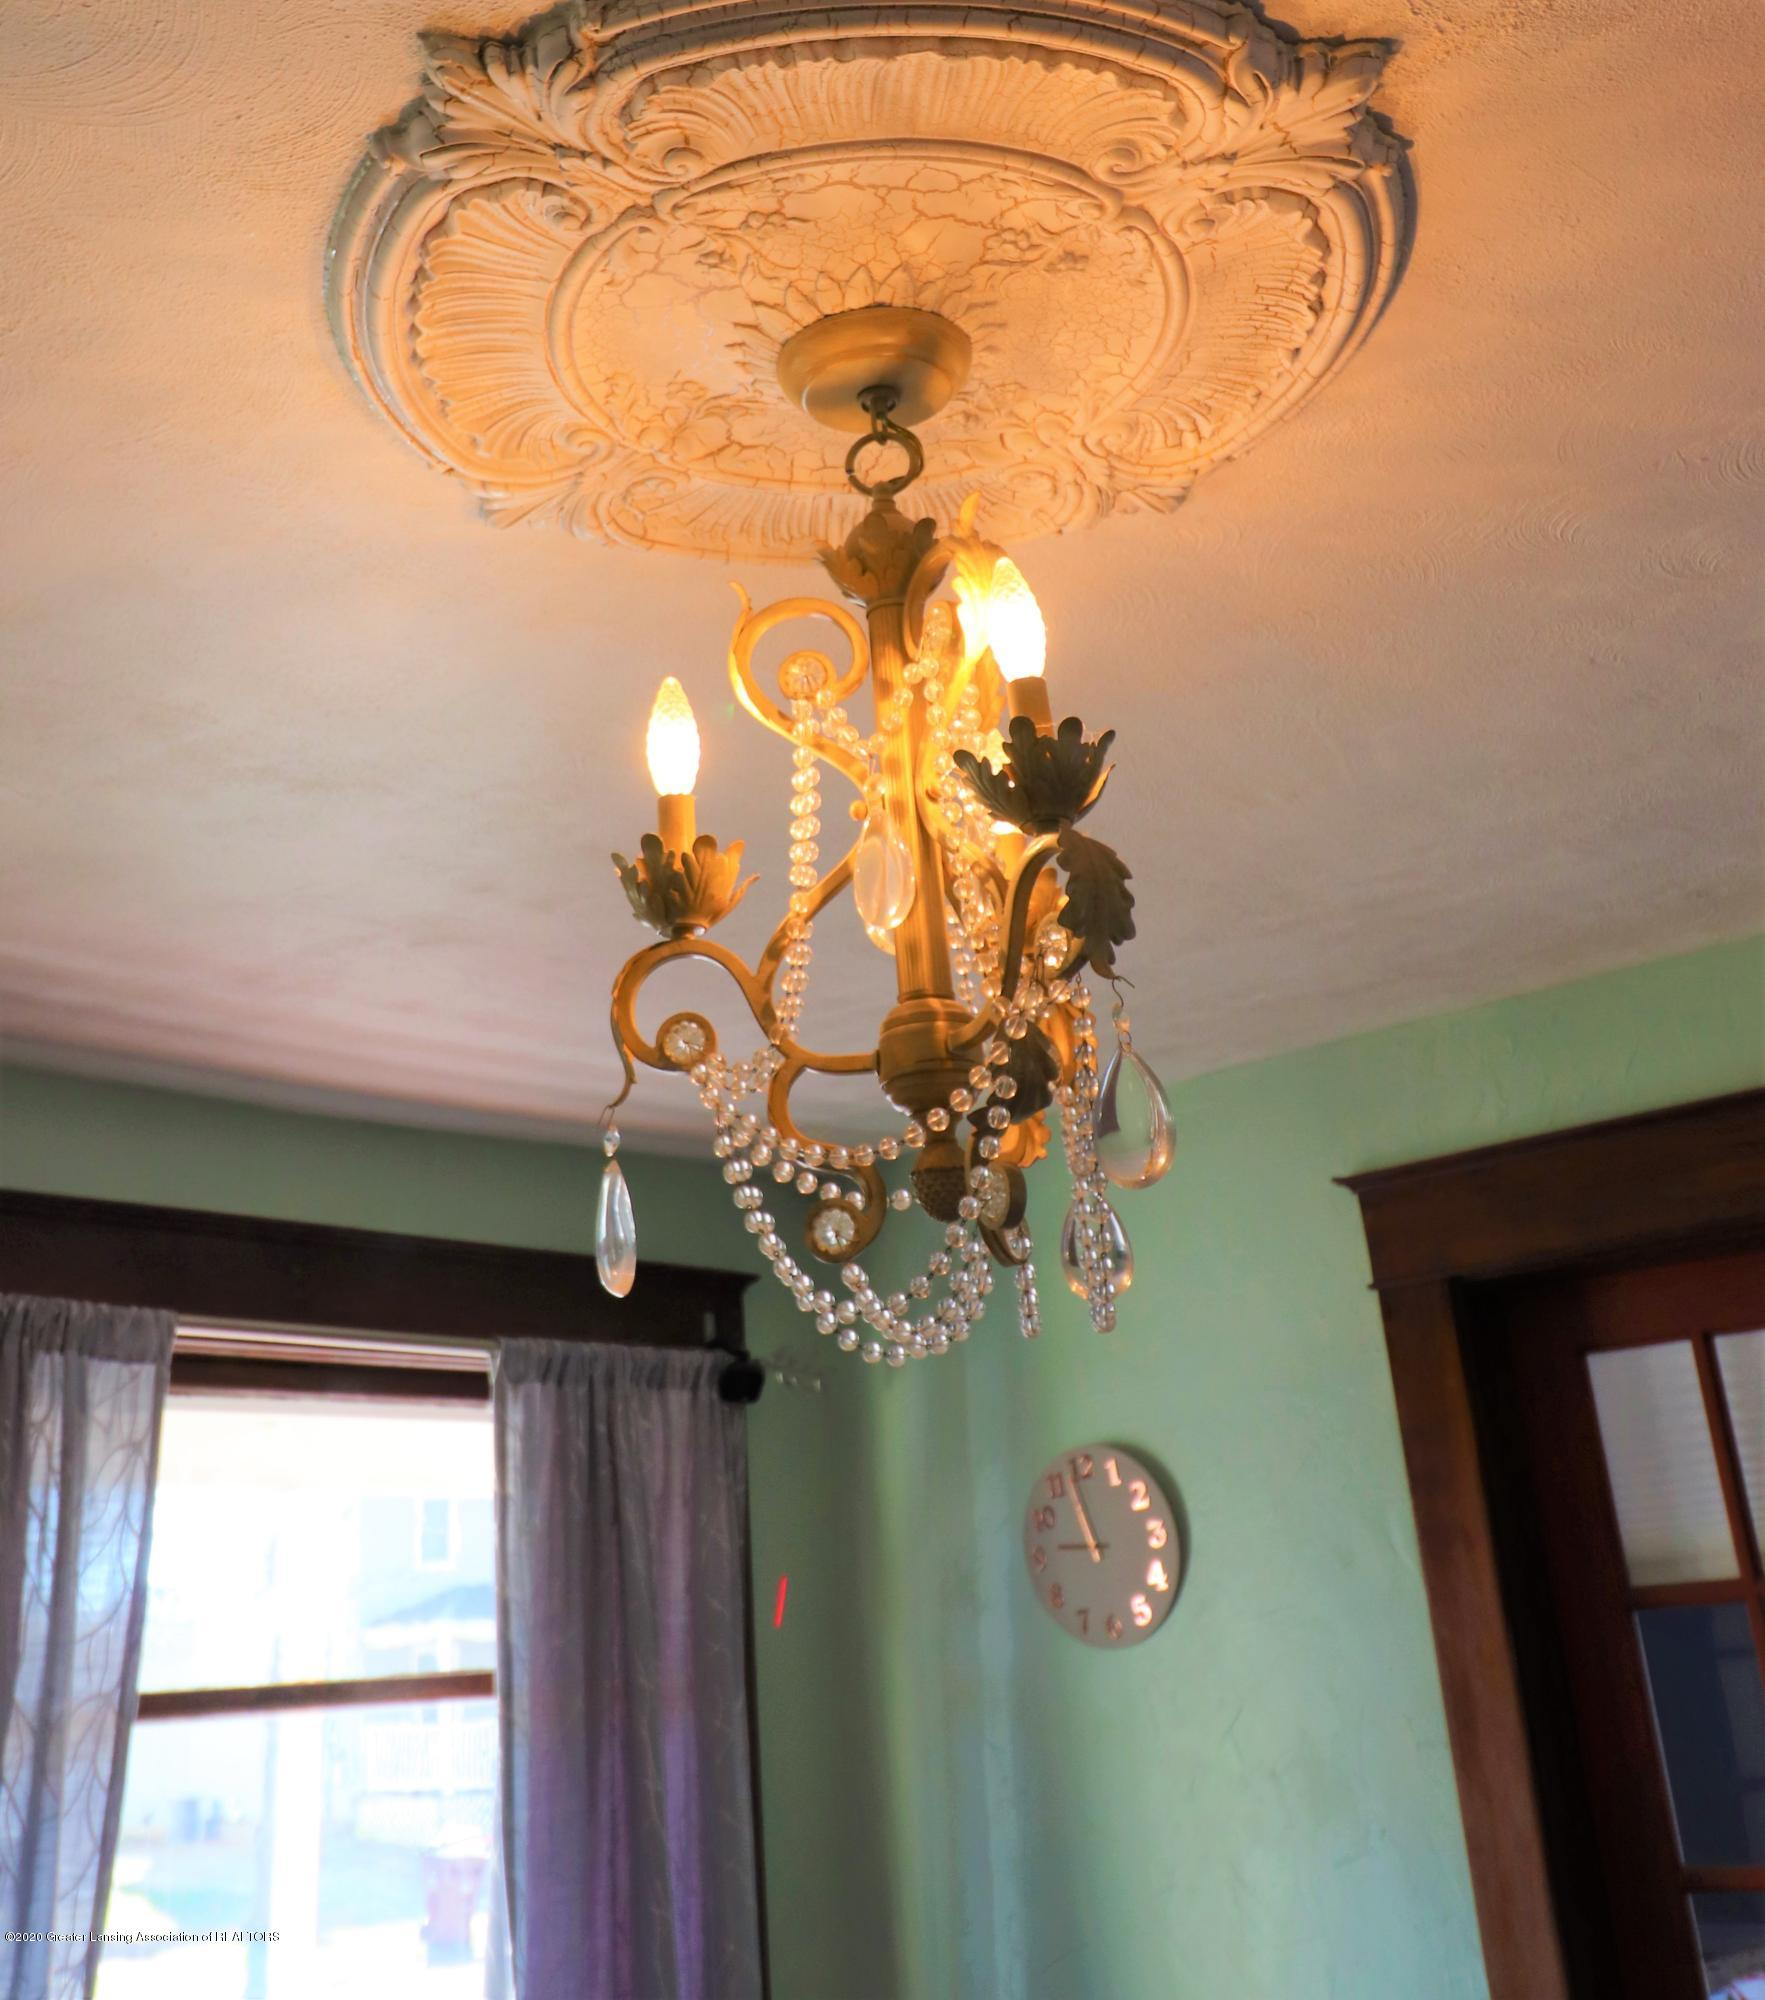 223 N Washington St - 7 PARLOUR LIGHT - 7